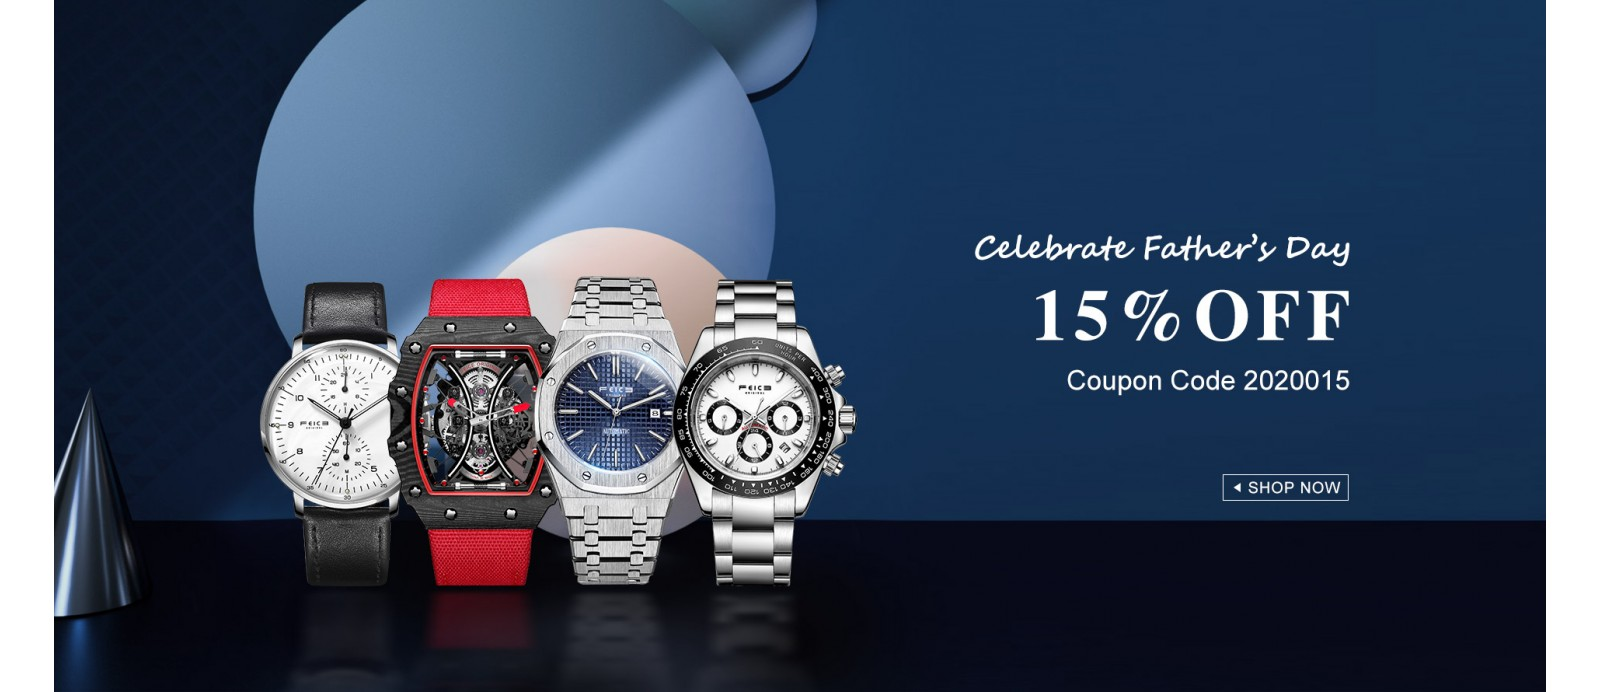 feice-watch-father's-day-discount